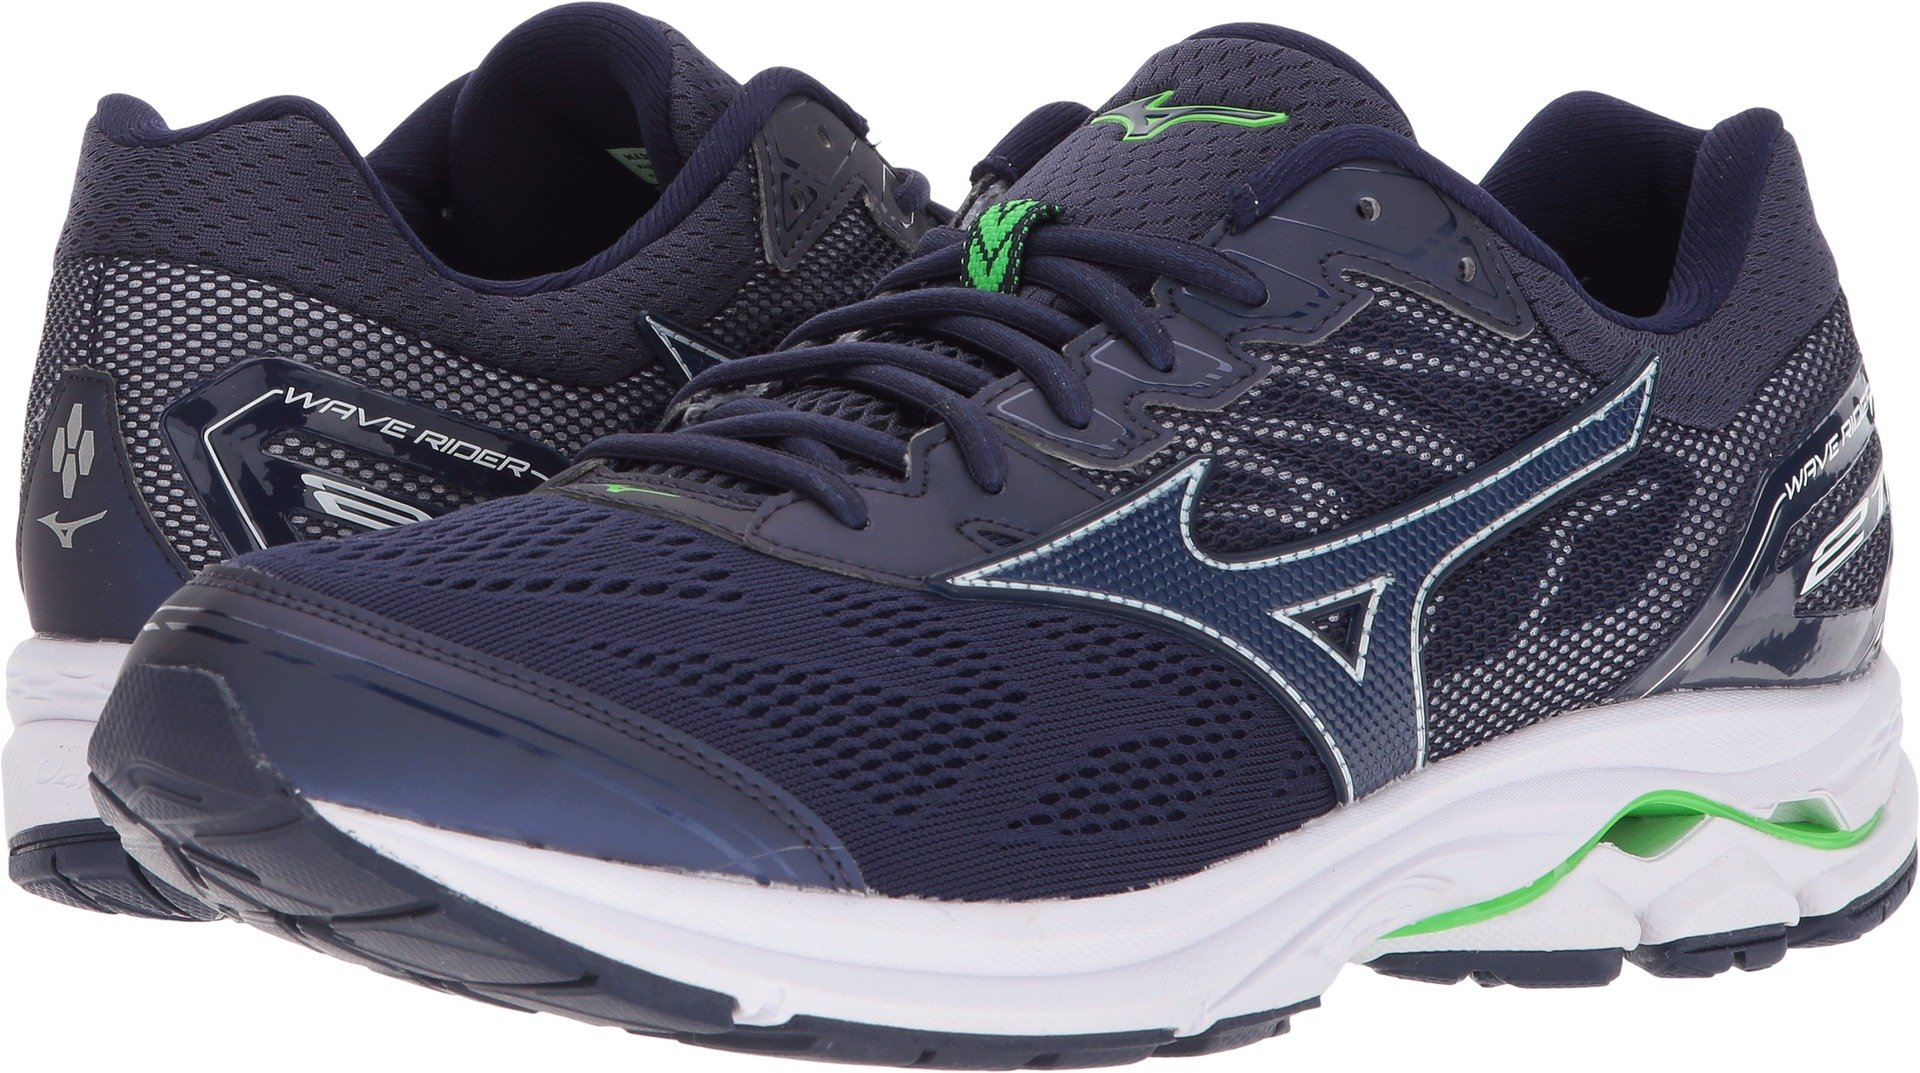 Mizuno Men's Wave Rider 21 Running Shoe, Eclipse, 12 D US by Mizuno